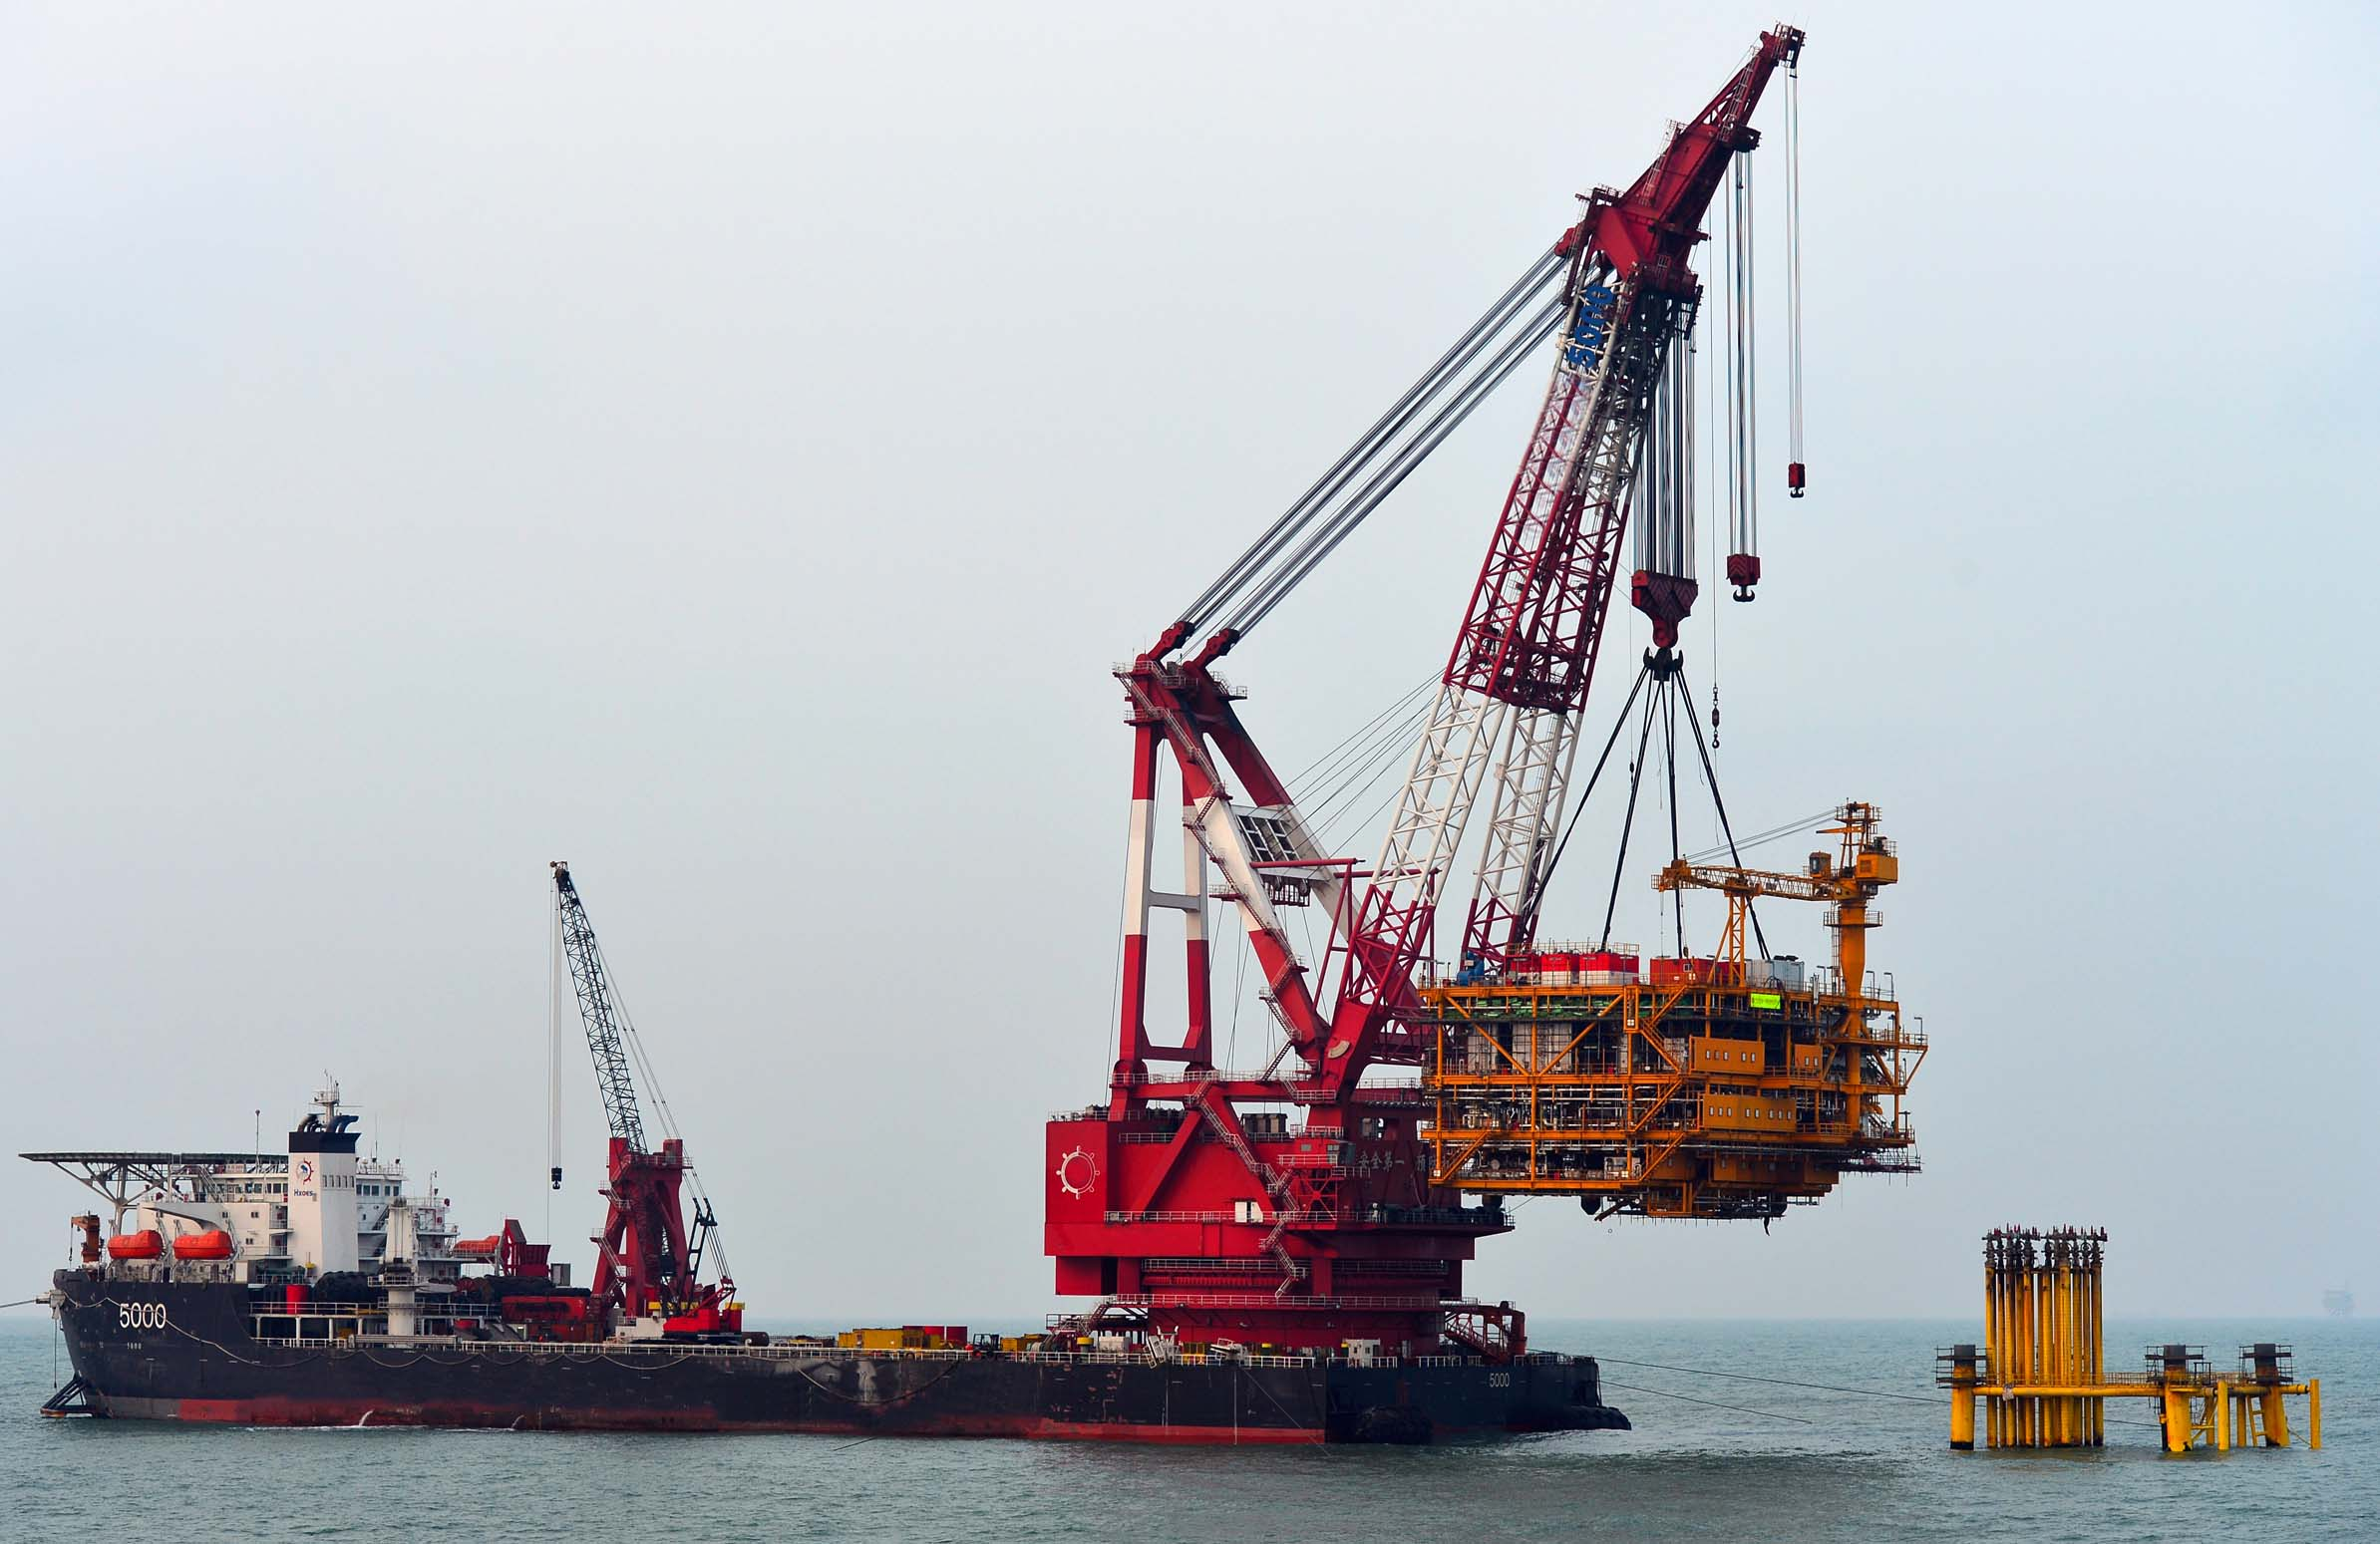 Mexico Floating Crane Barge Crane Vessel Crane Ship Hire Rent Buy Sale SELL Charter Mejico MEXICO